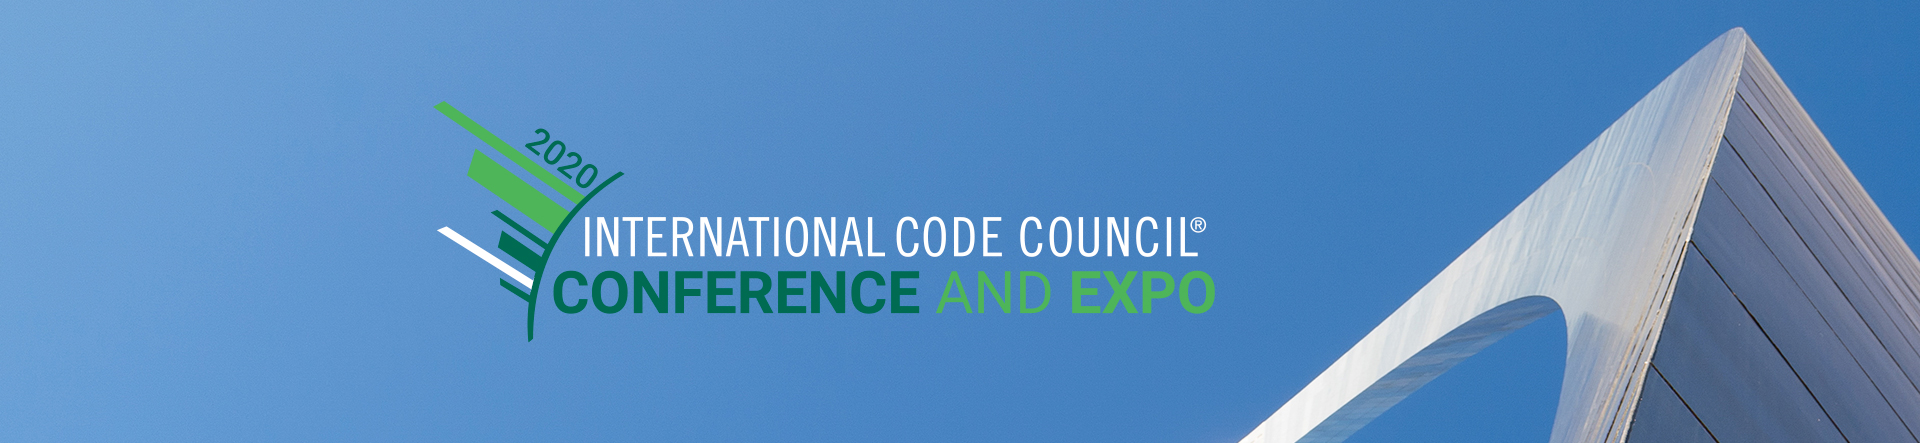 2020 Conference and Expo